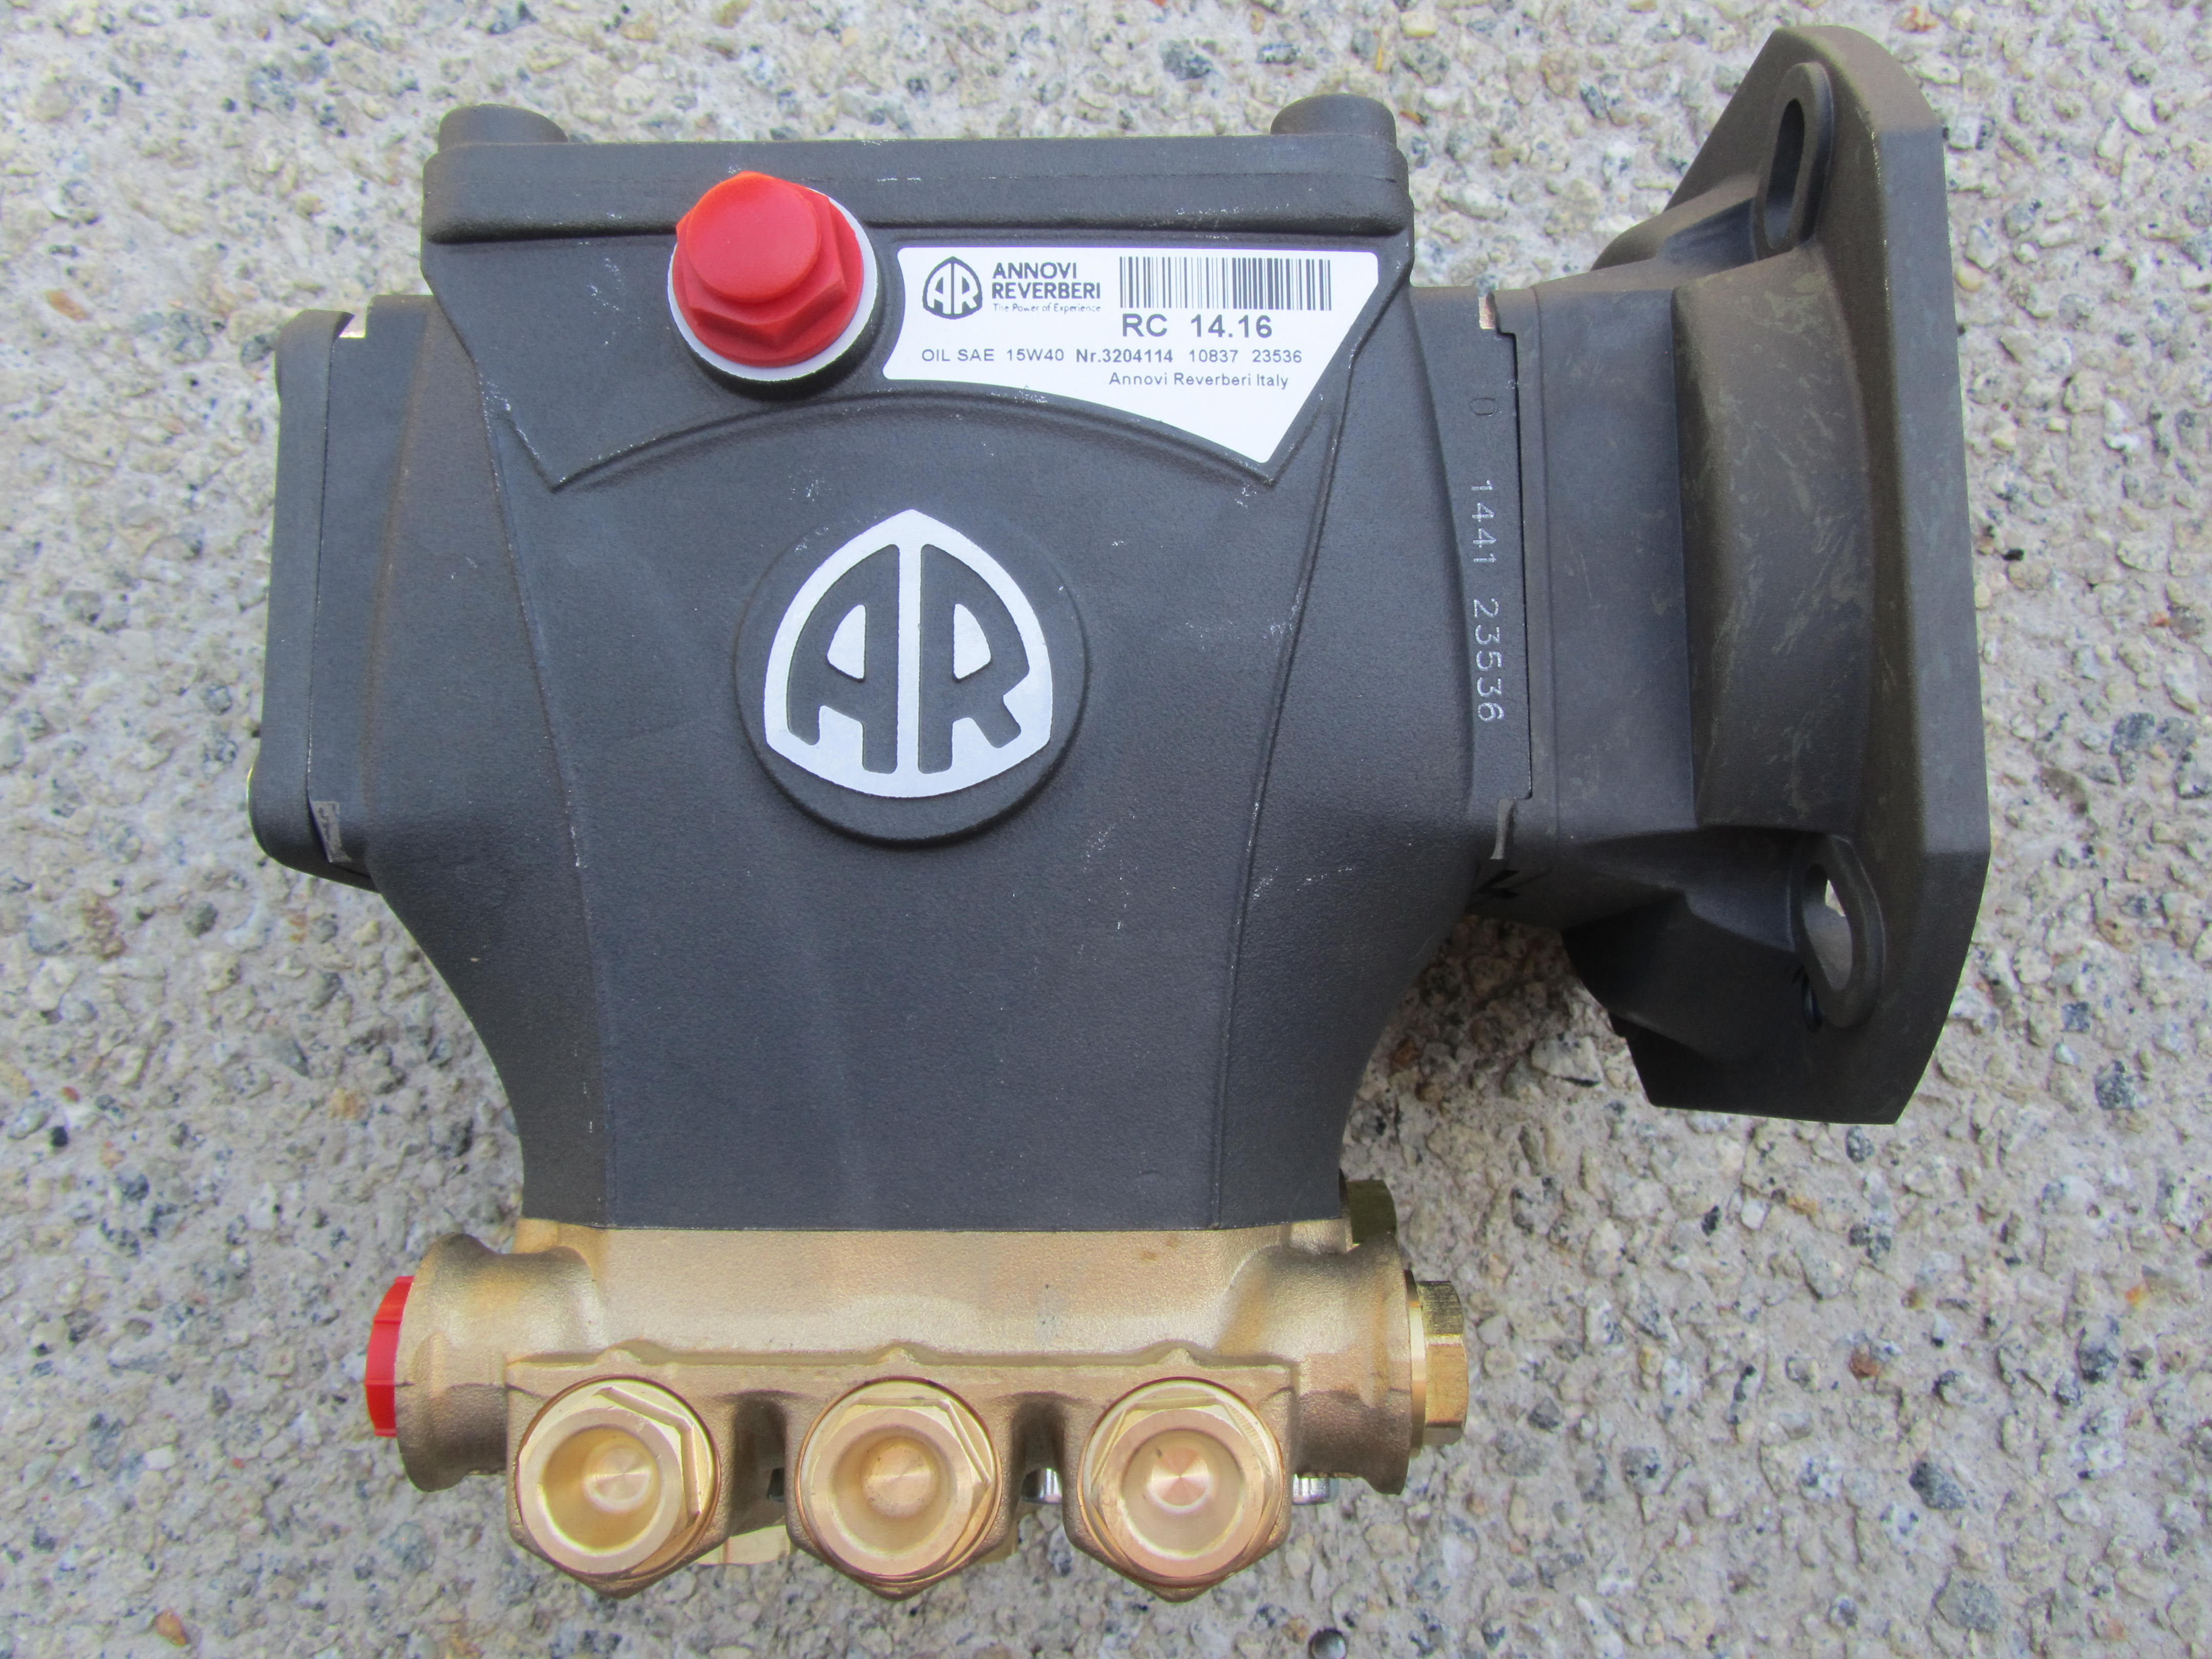 Annovi reverberi 2300psi pump 14 lpm suits 4kw 3 phase for Pressure washer pump electric motor